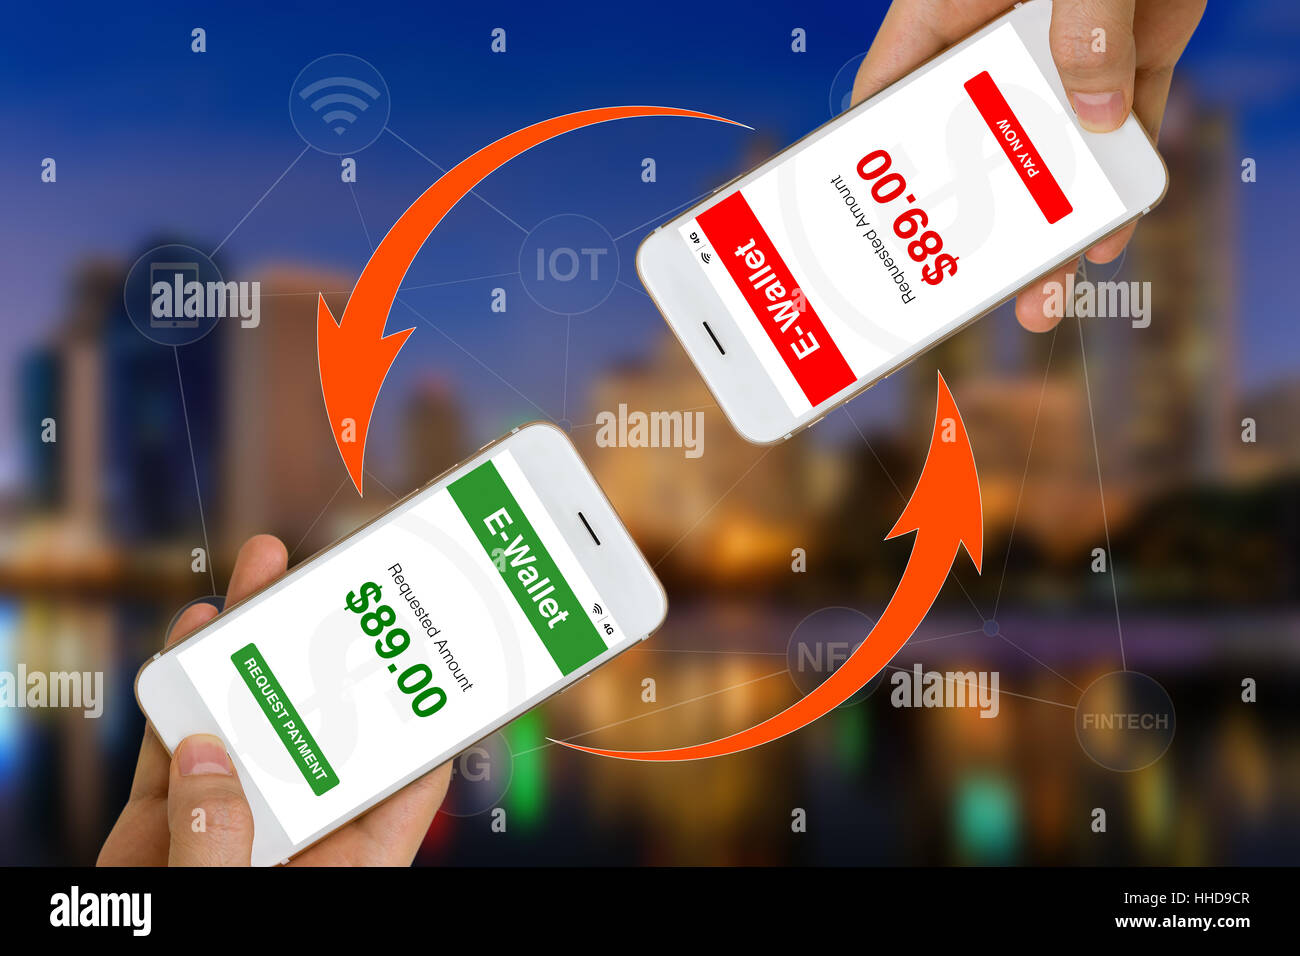 Concept of Fintech or financial technology shown by using smartphone and e-wallet app to transfer money of make - Stock Image